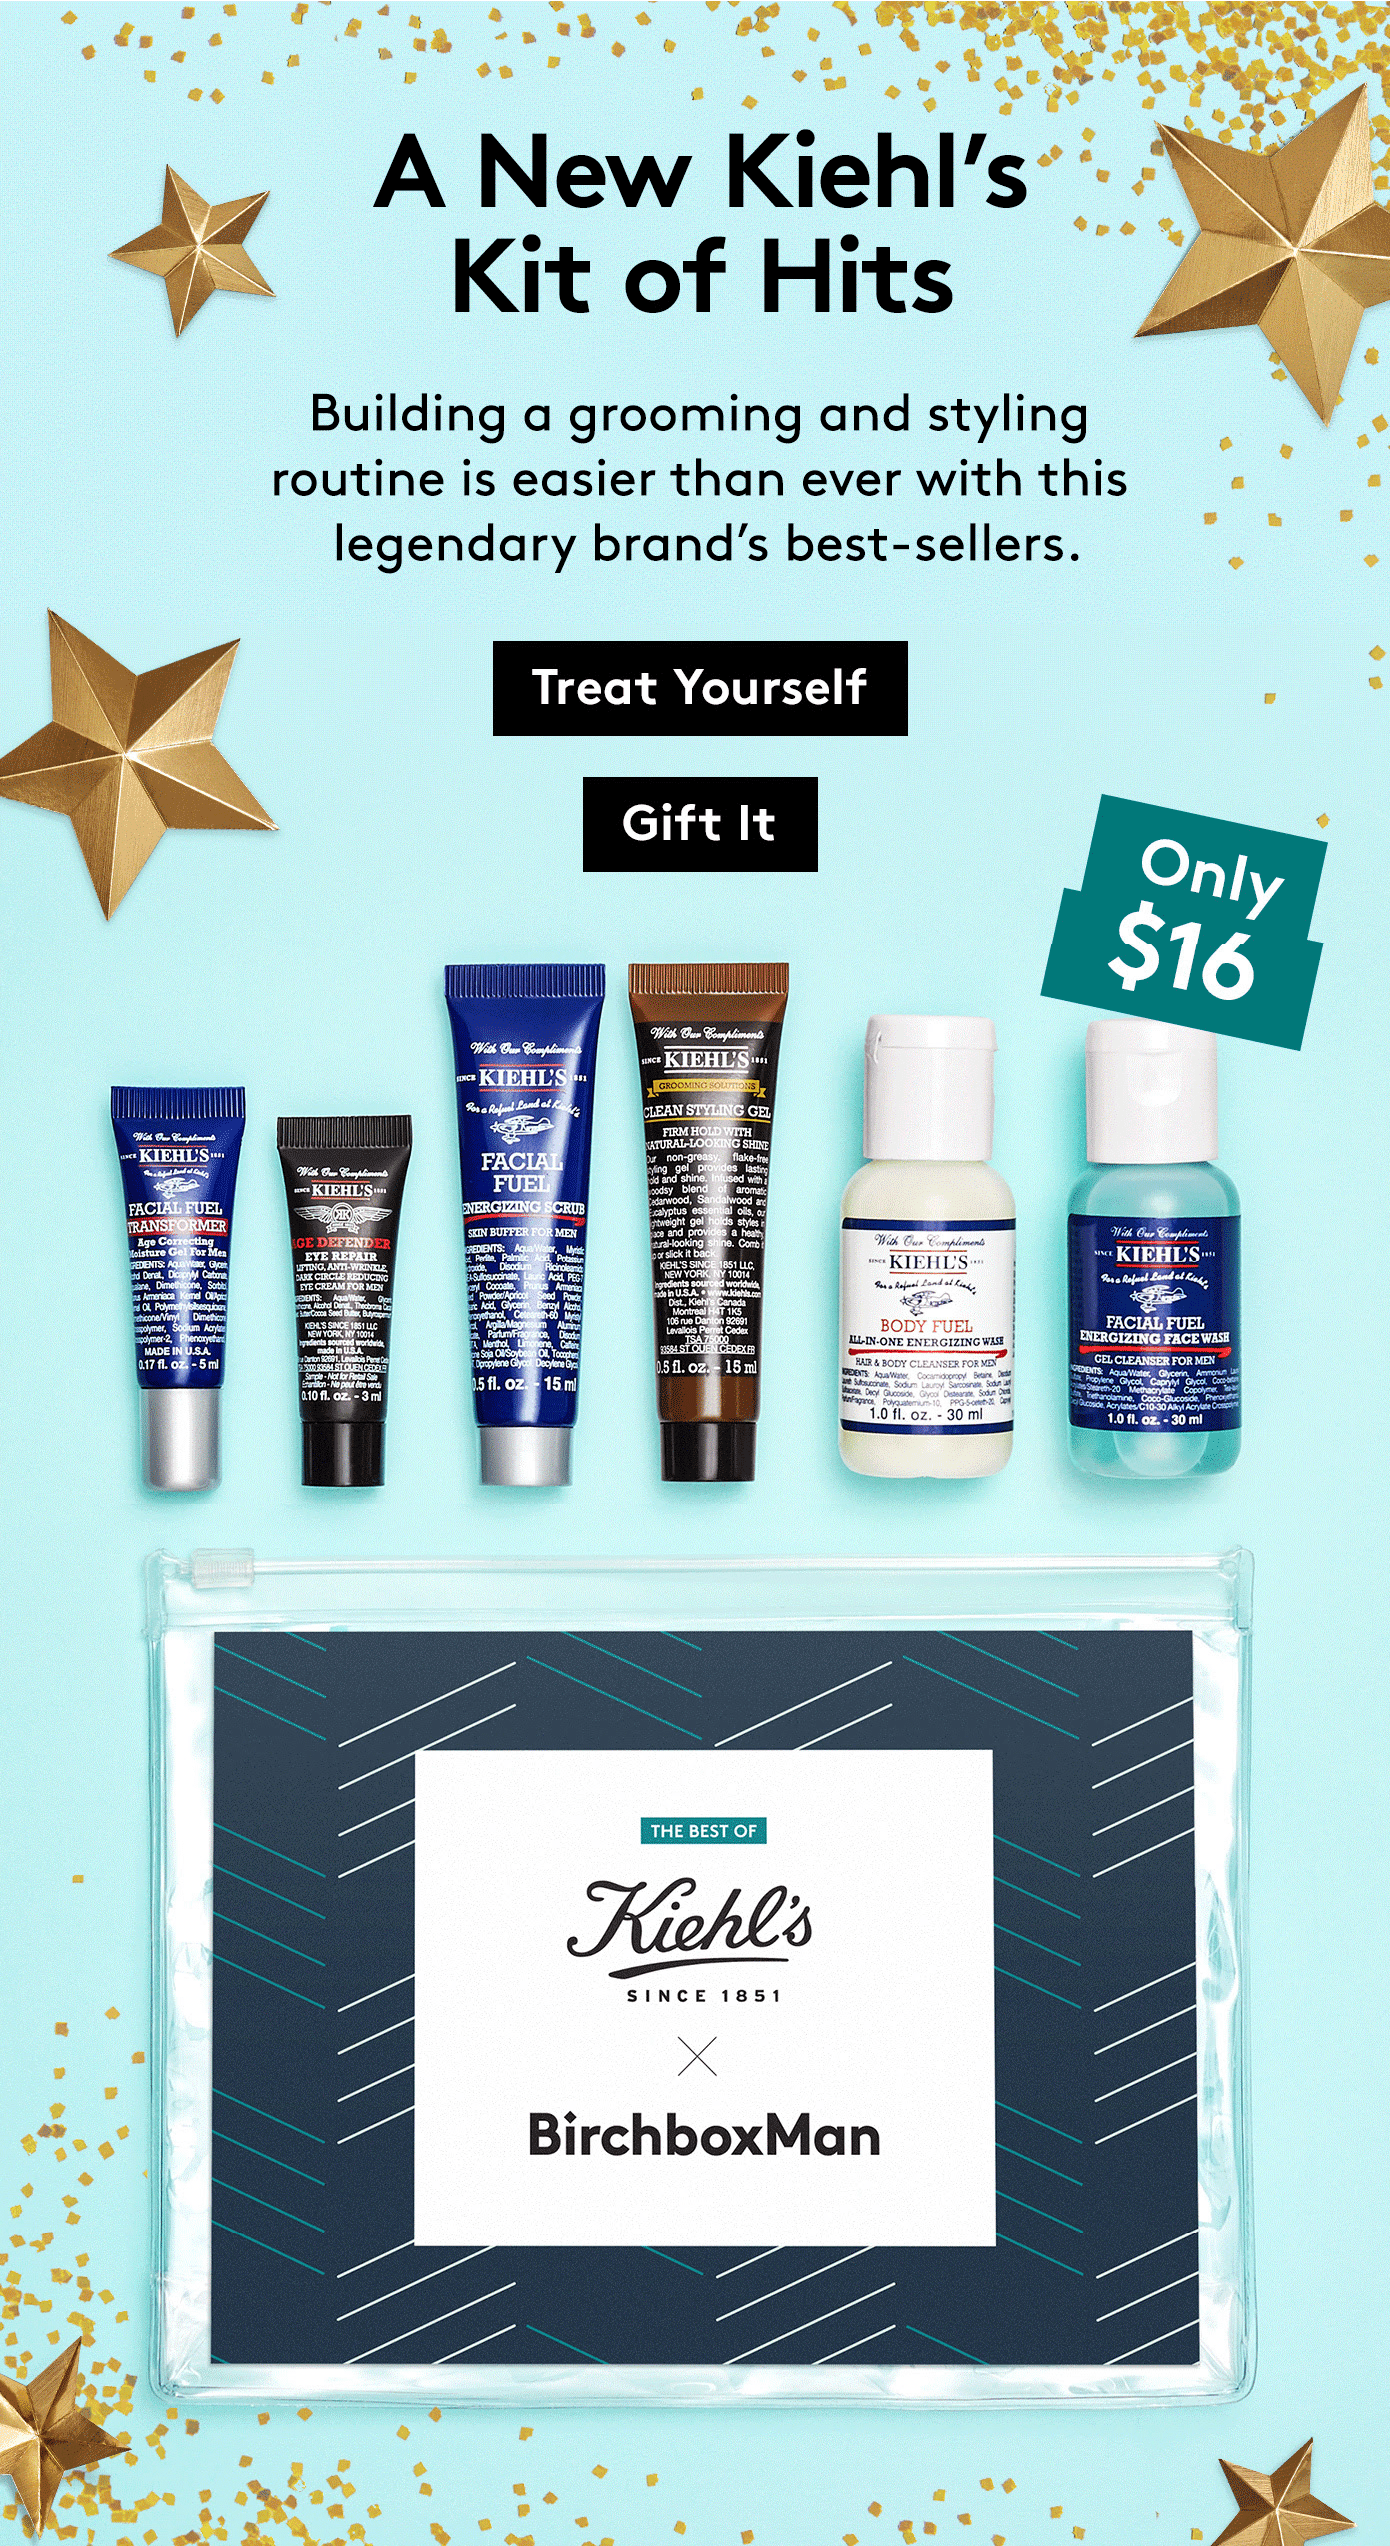 New Birchbox Man Limited Edition Box: The Best of Kiehl's X BirchboxMan Kit + Coupons!